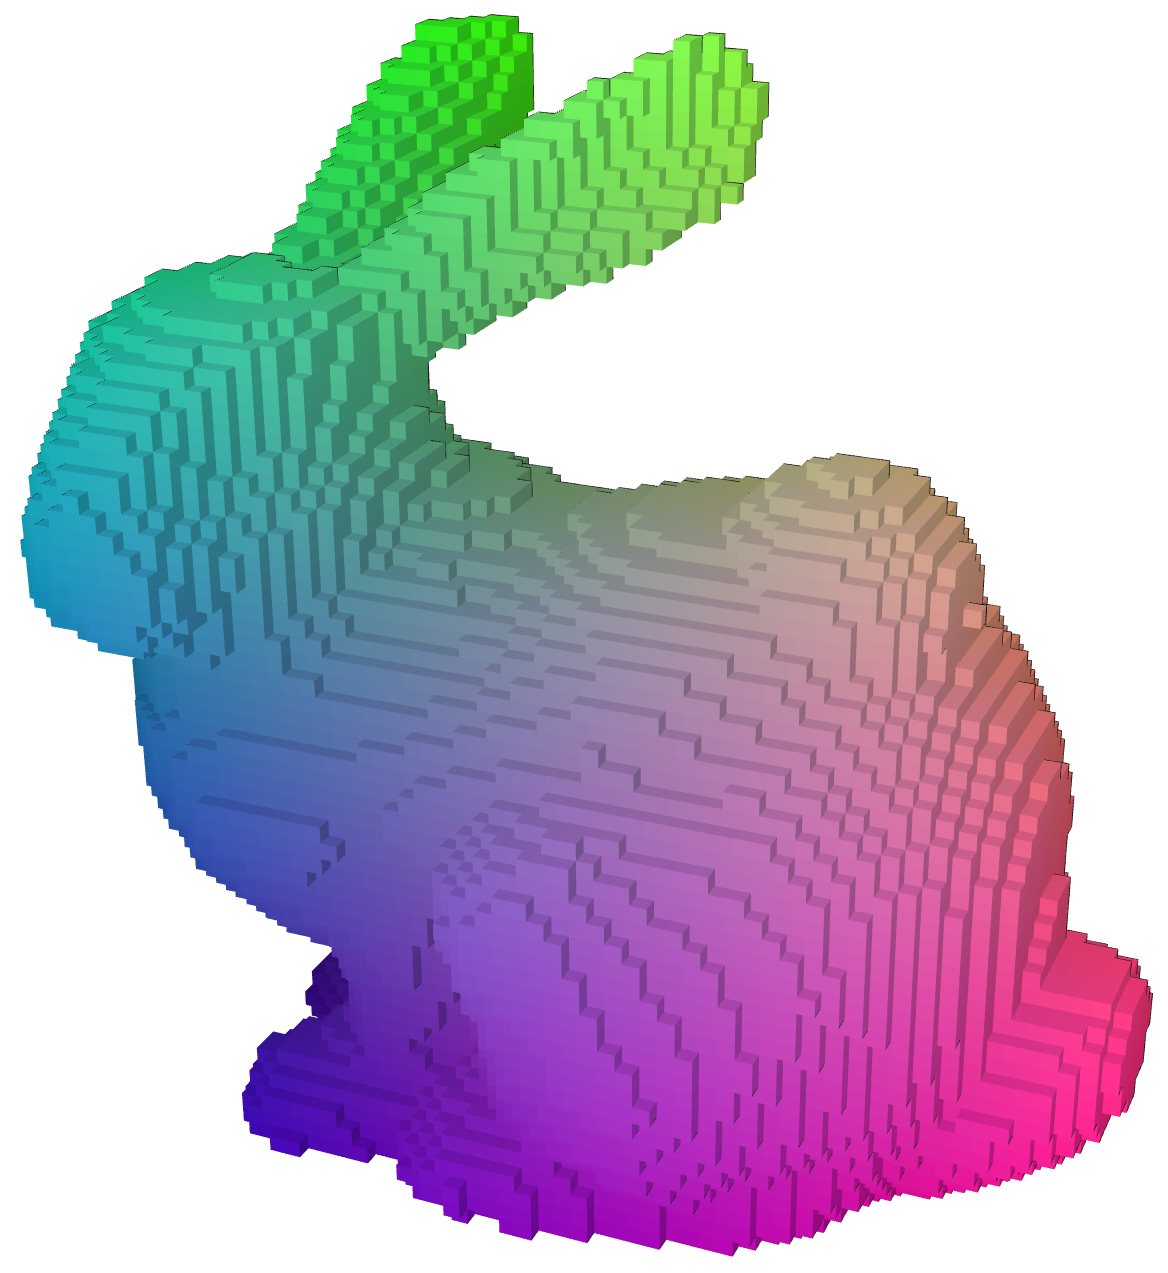 holey_bunny_vox.png